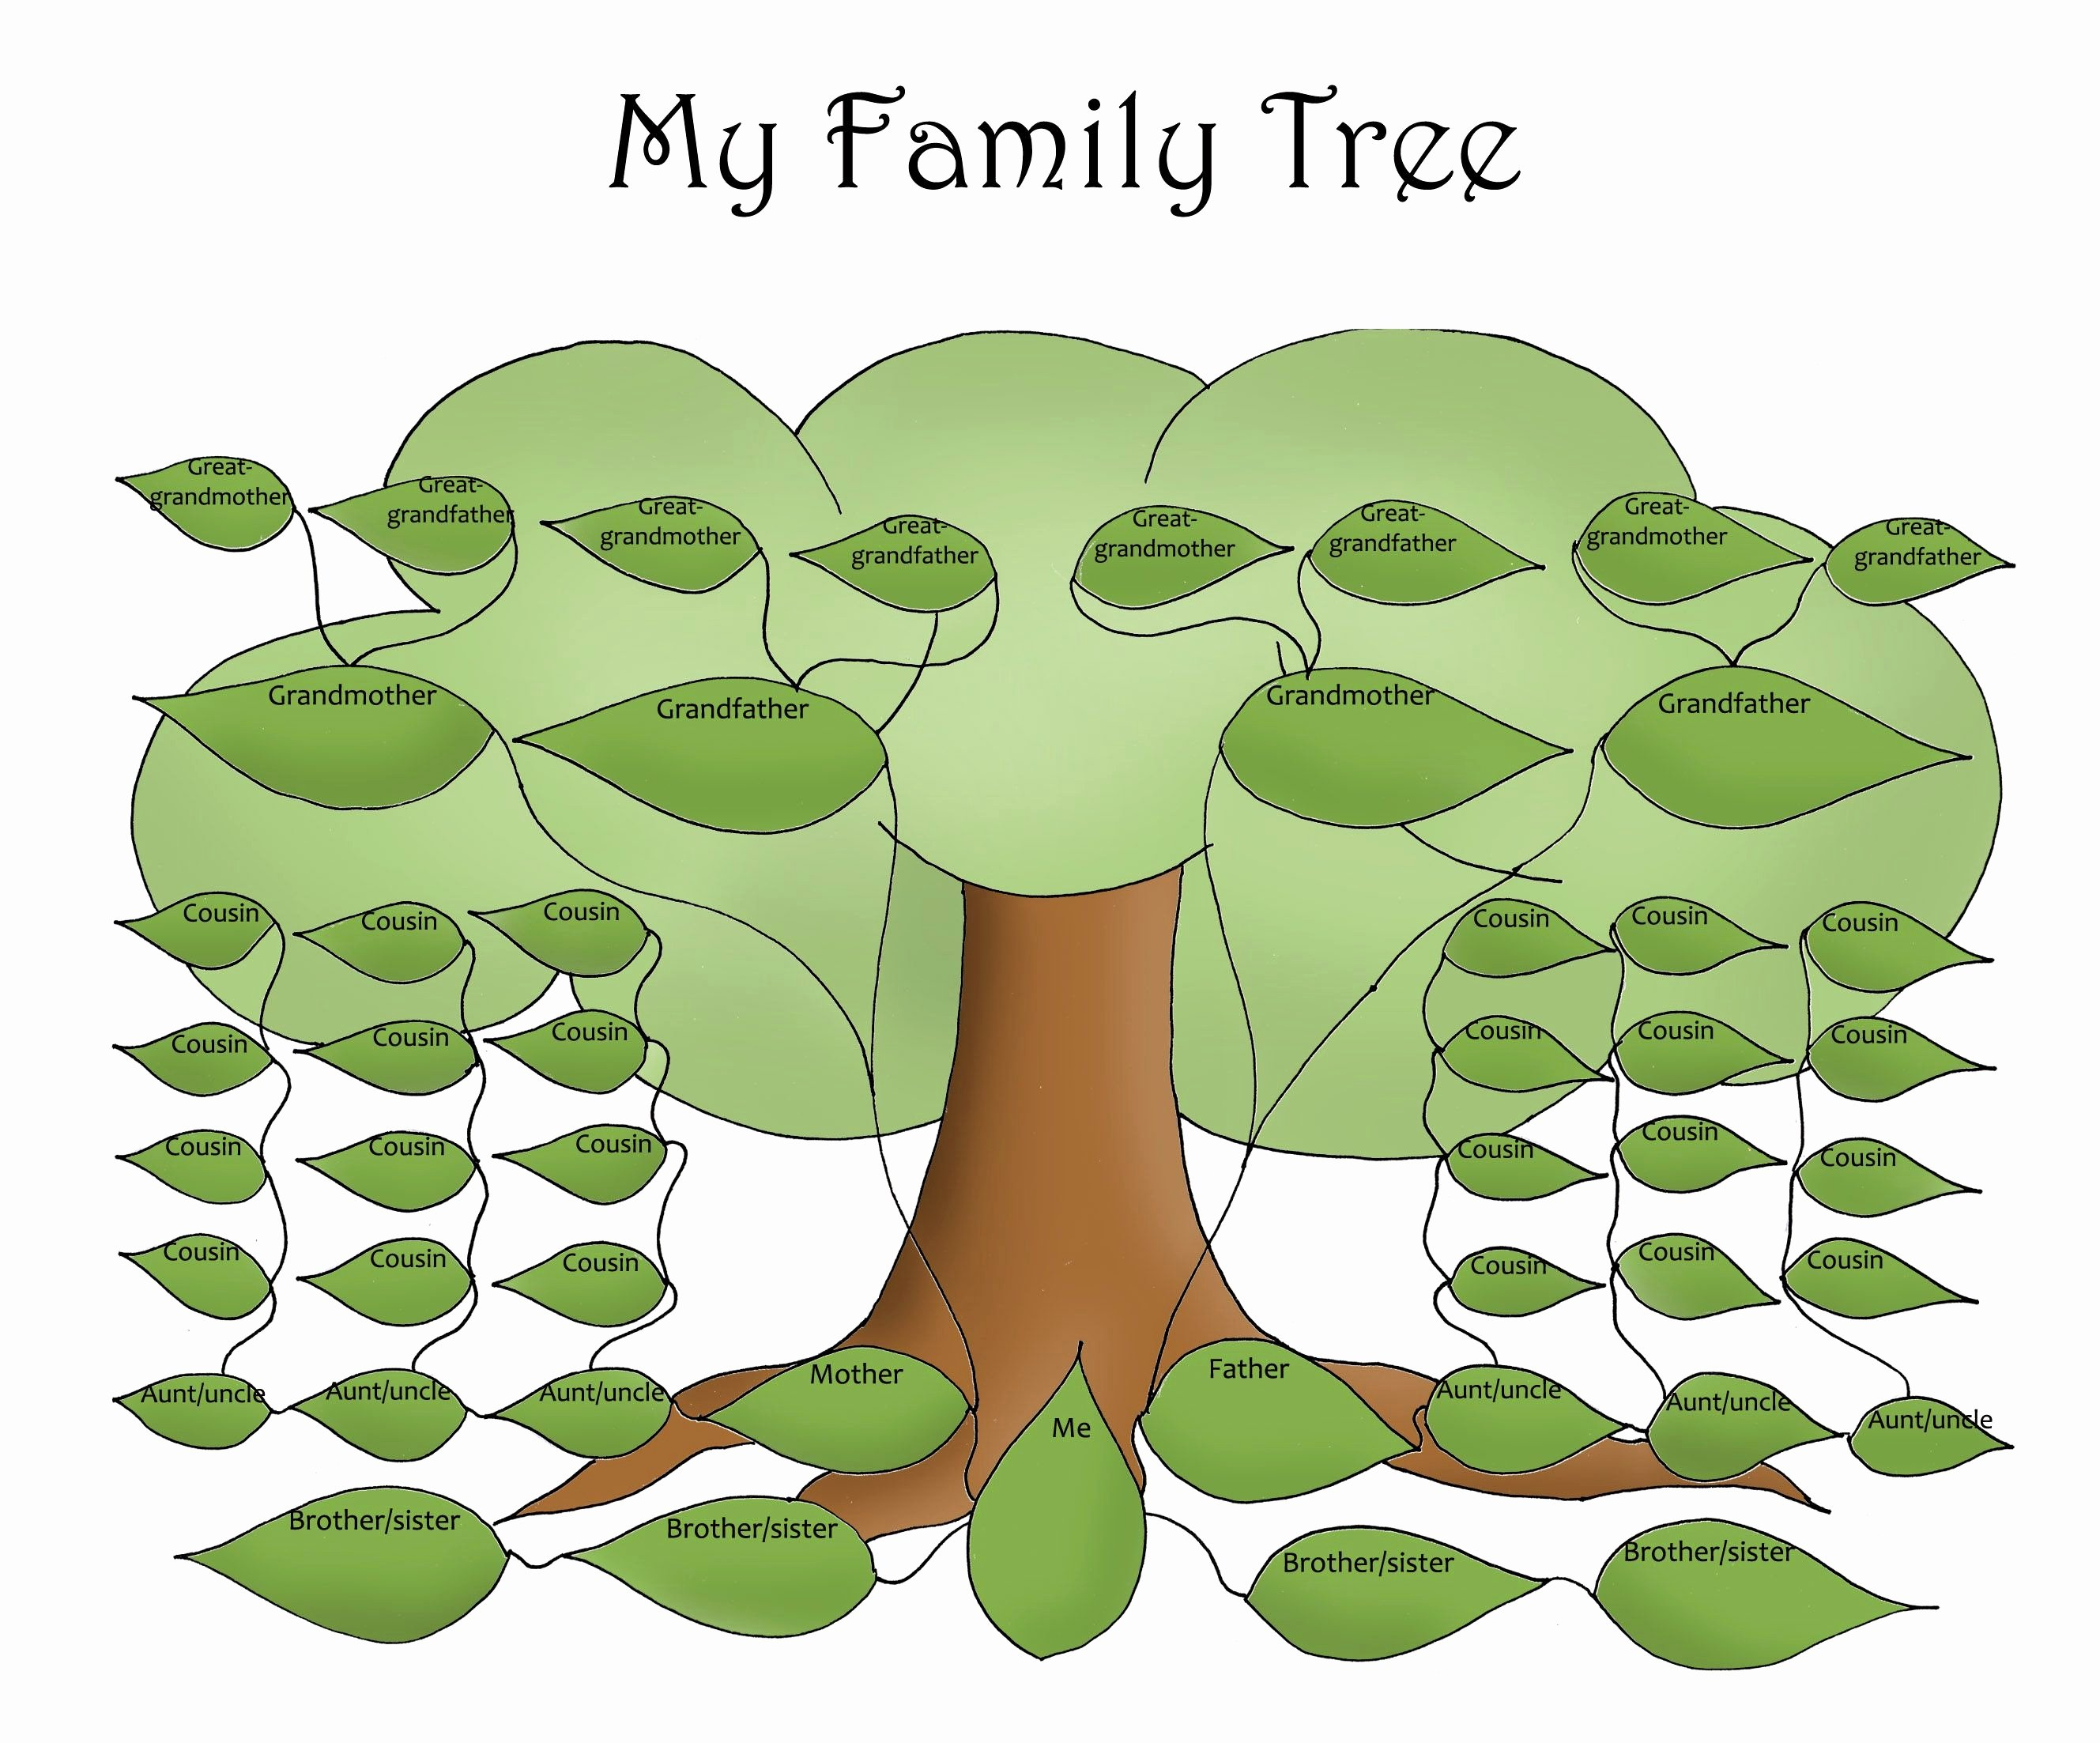 Blank Family Tree Template Best Of Free Editable Family Tree Template Daily Roabox